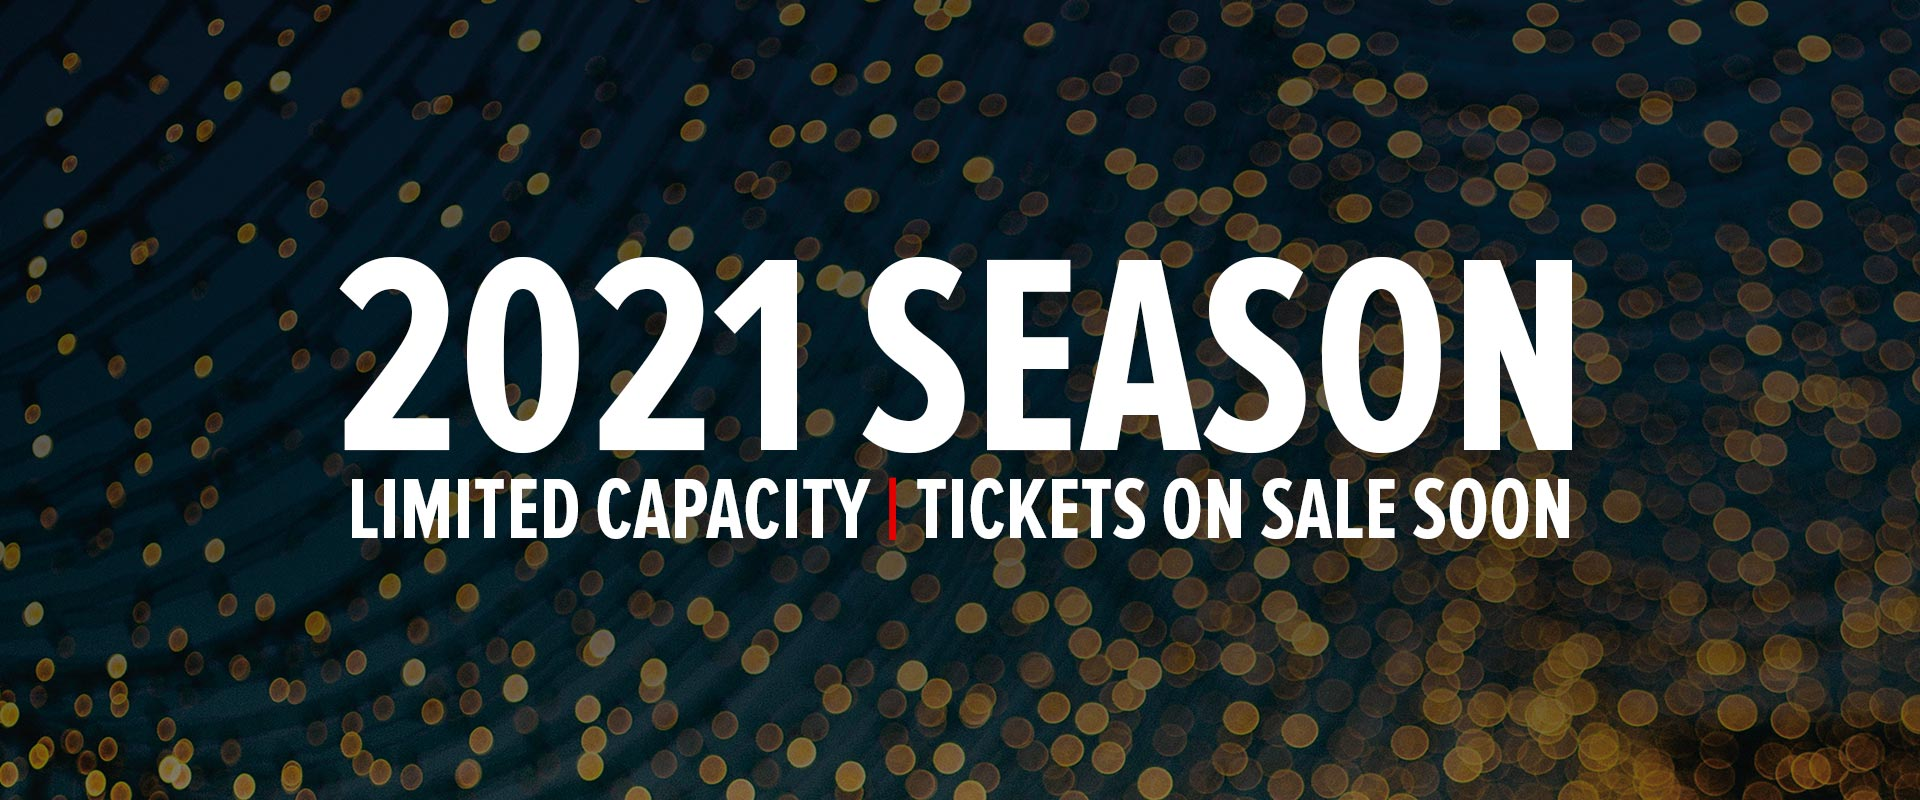 2021 Season Learn More